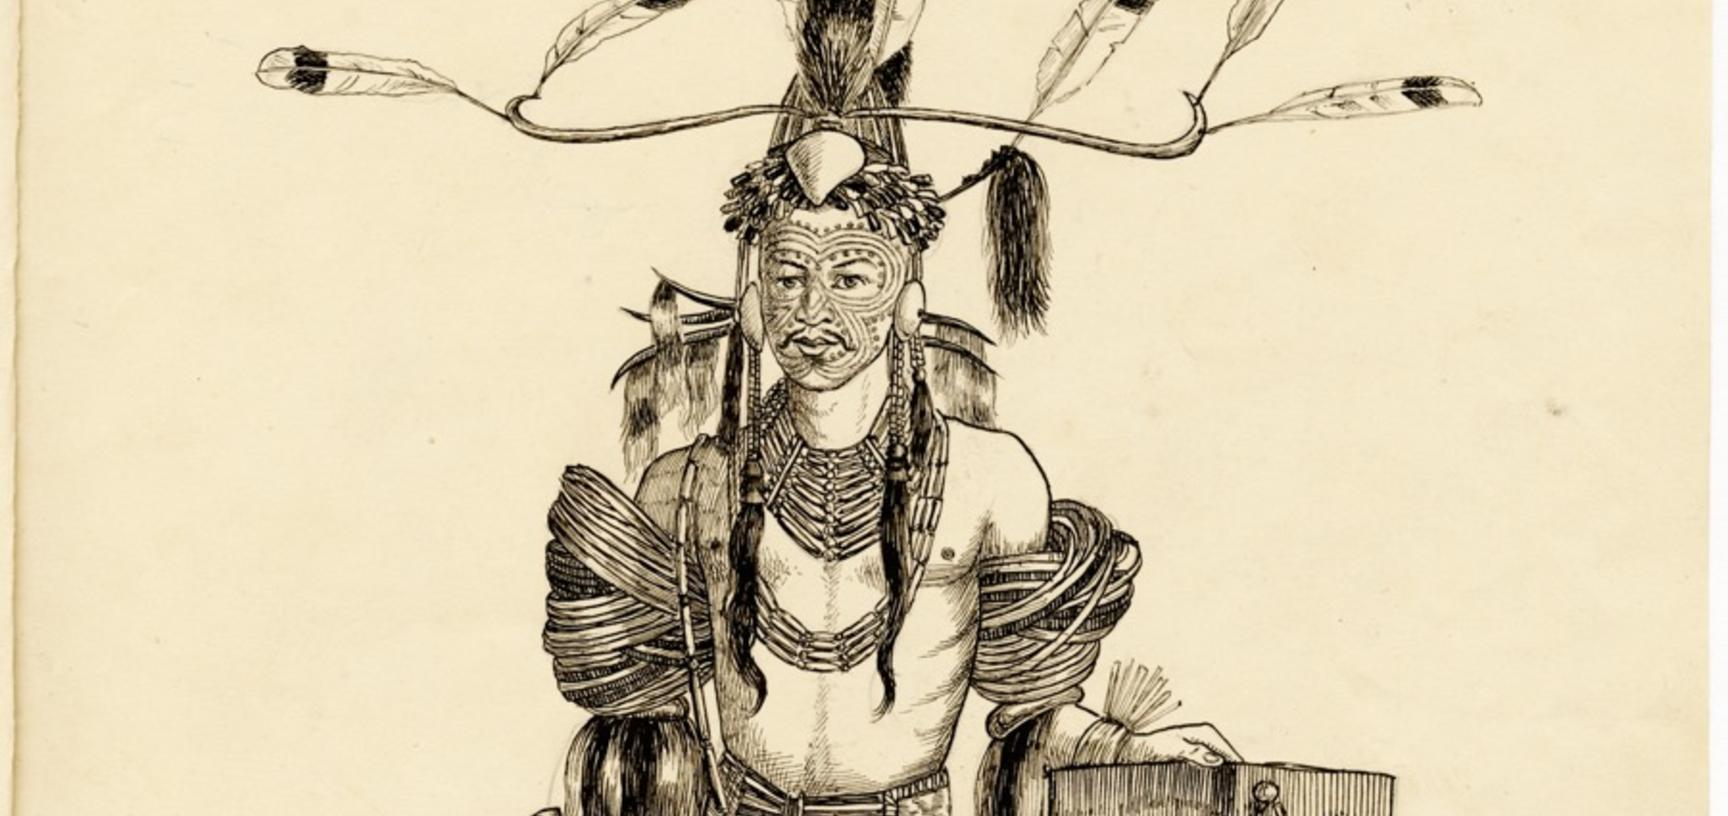 'Soibang, Vangam of Chopnu (Bor Mutan)' (handwritten caption). Portrait of a Konyak Naga man named Soibang, the chief or headman (vangam) of the village of Chopnu (Bor Mutan) in the Naga Hills District of Assam (now in Nagaland), India. Ink drawing by Rob